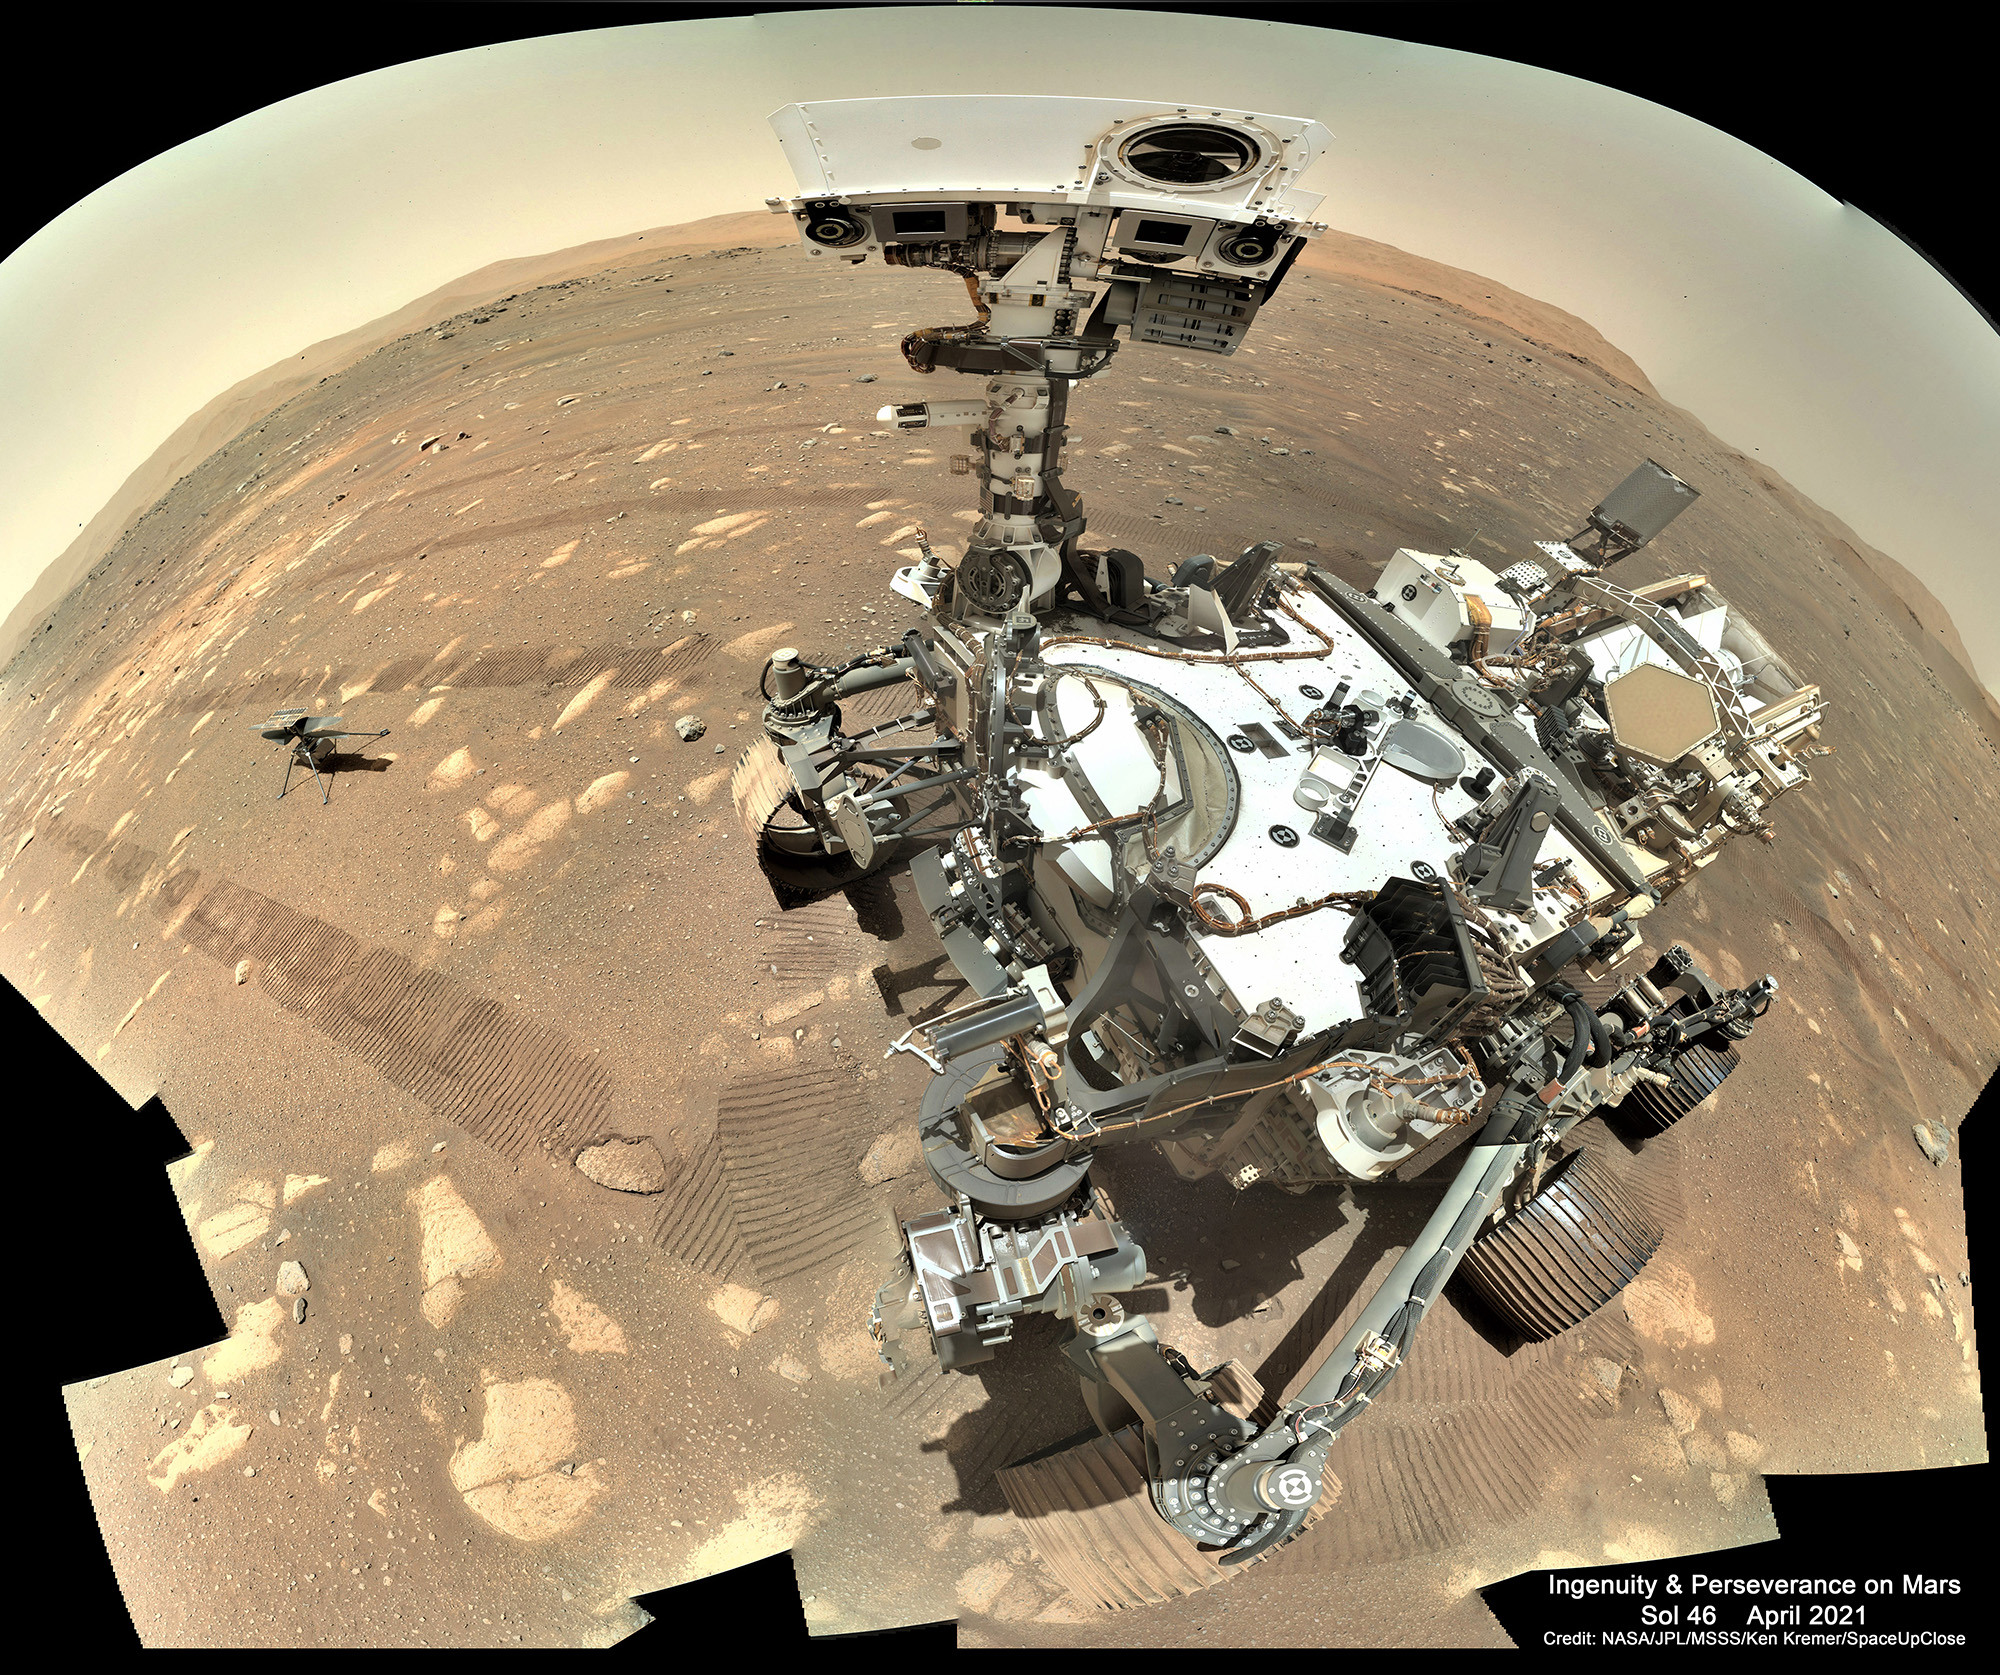 Ginny and Percy: Perseverance Snaps Spectacular 1st Selfie with Ingenuity Helicopter on Mars Ahead of Historic Flight! Mosaic